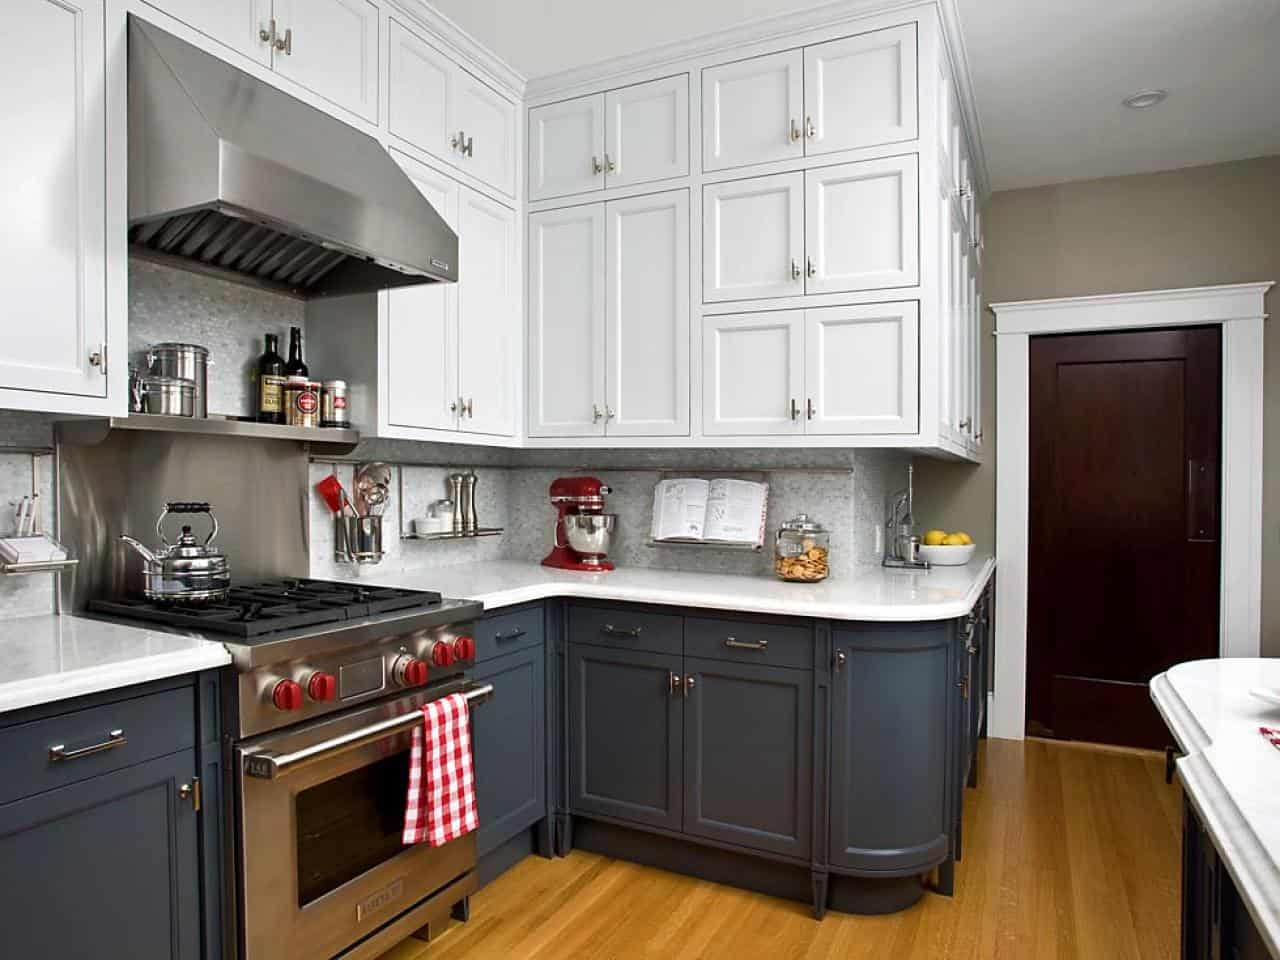 marble-two-toned-cabinets_s4x3.jpg.rend.hgtvcom.1280.960